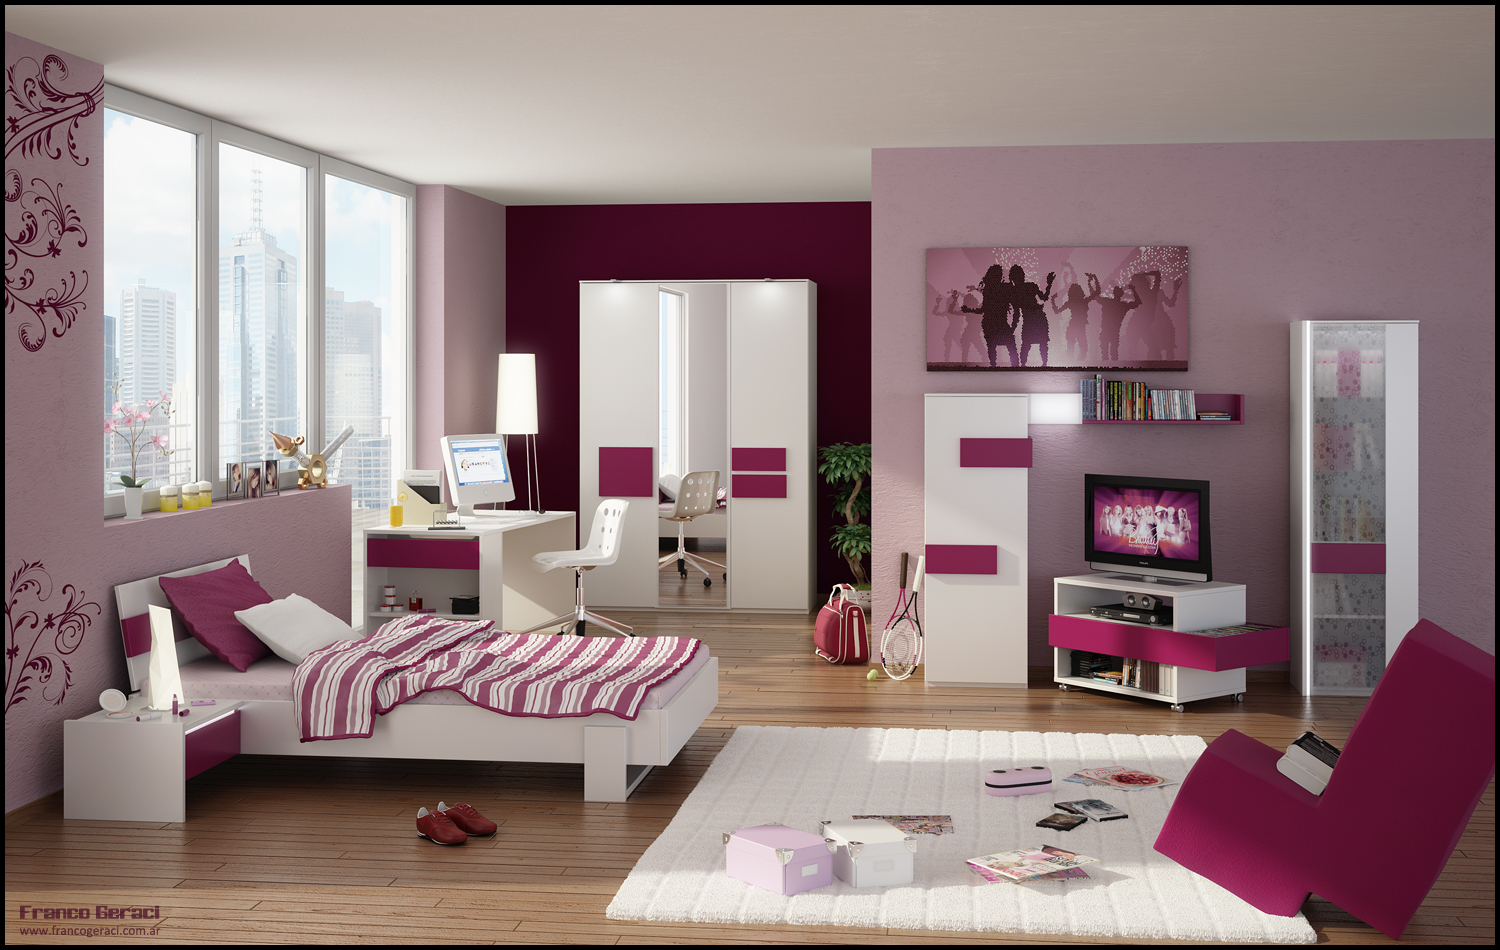 Living Room Pictures Of Room Designs teenage room designs 3dteen byfeg